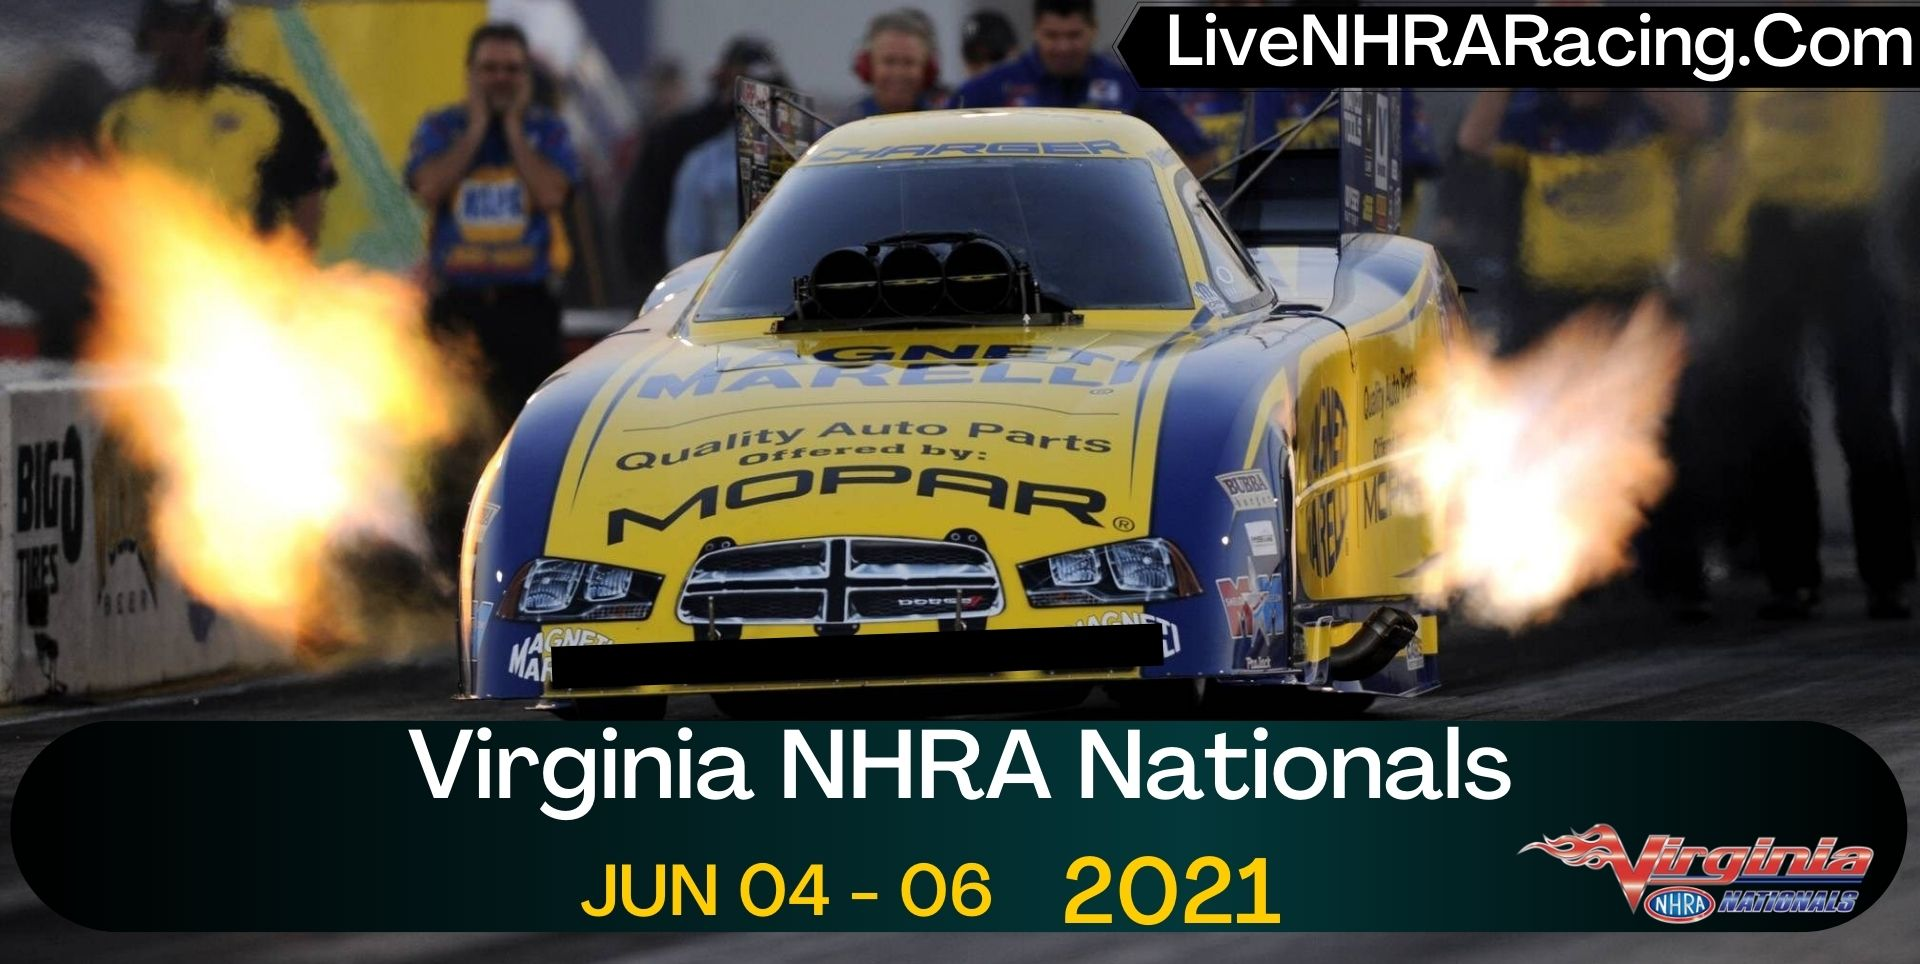 Virginia NHRA Nationals Live Stream 2021